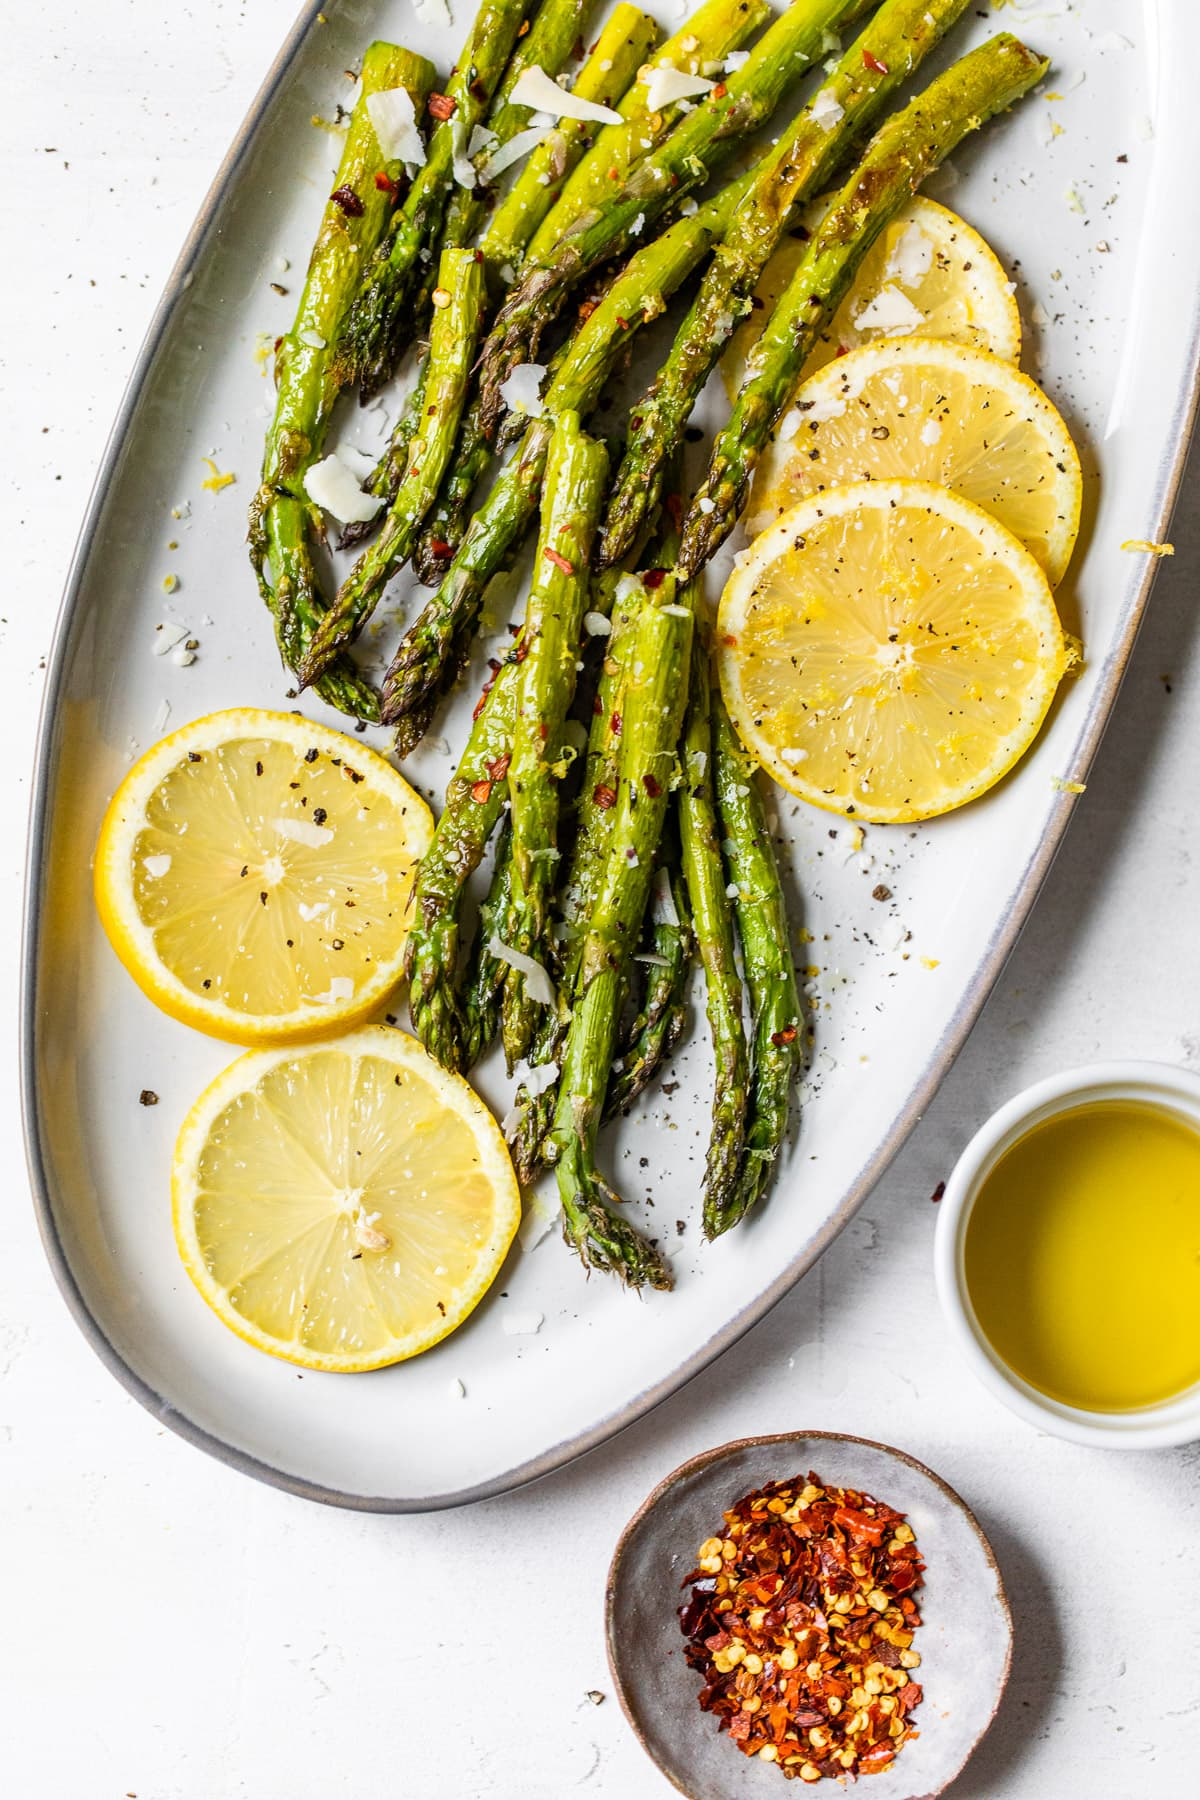 Lemon slices and roasted asparagus